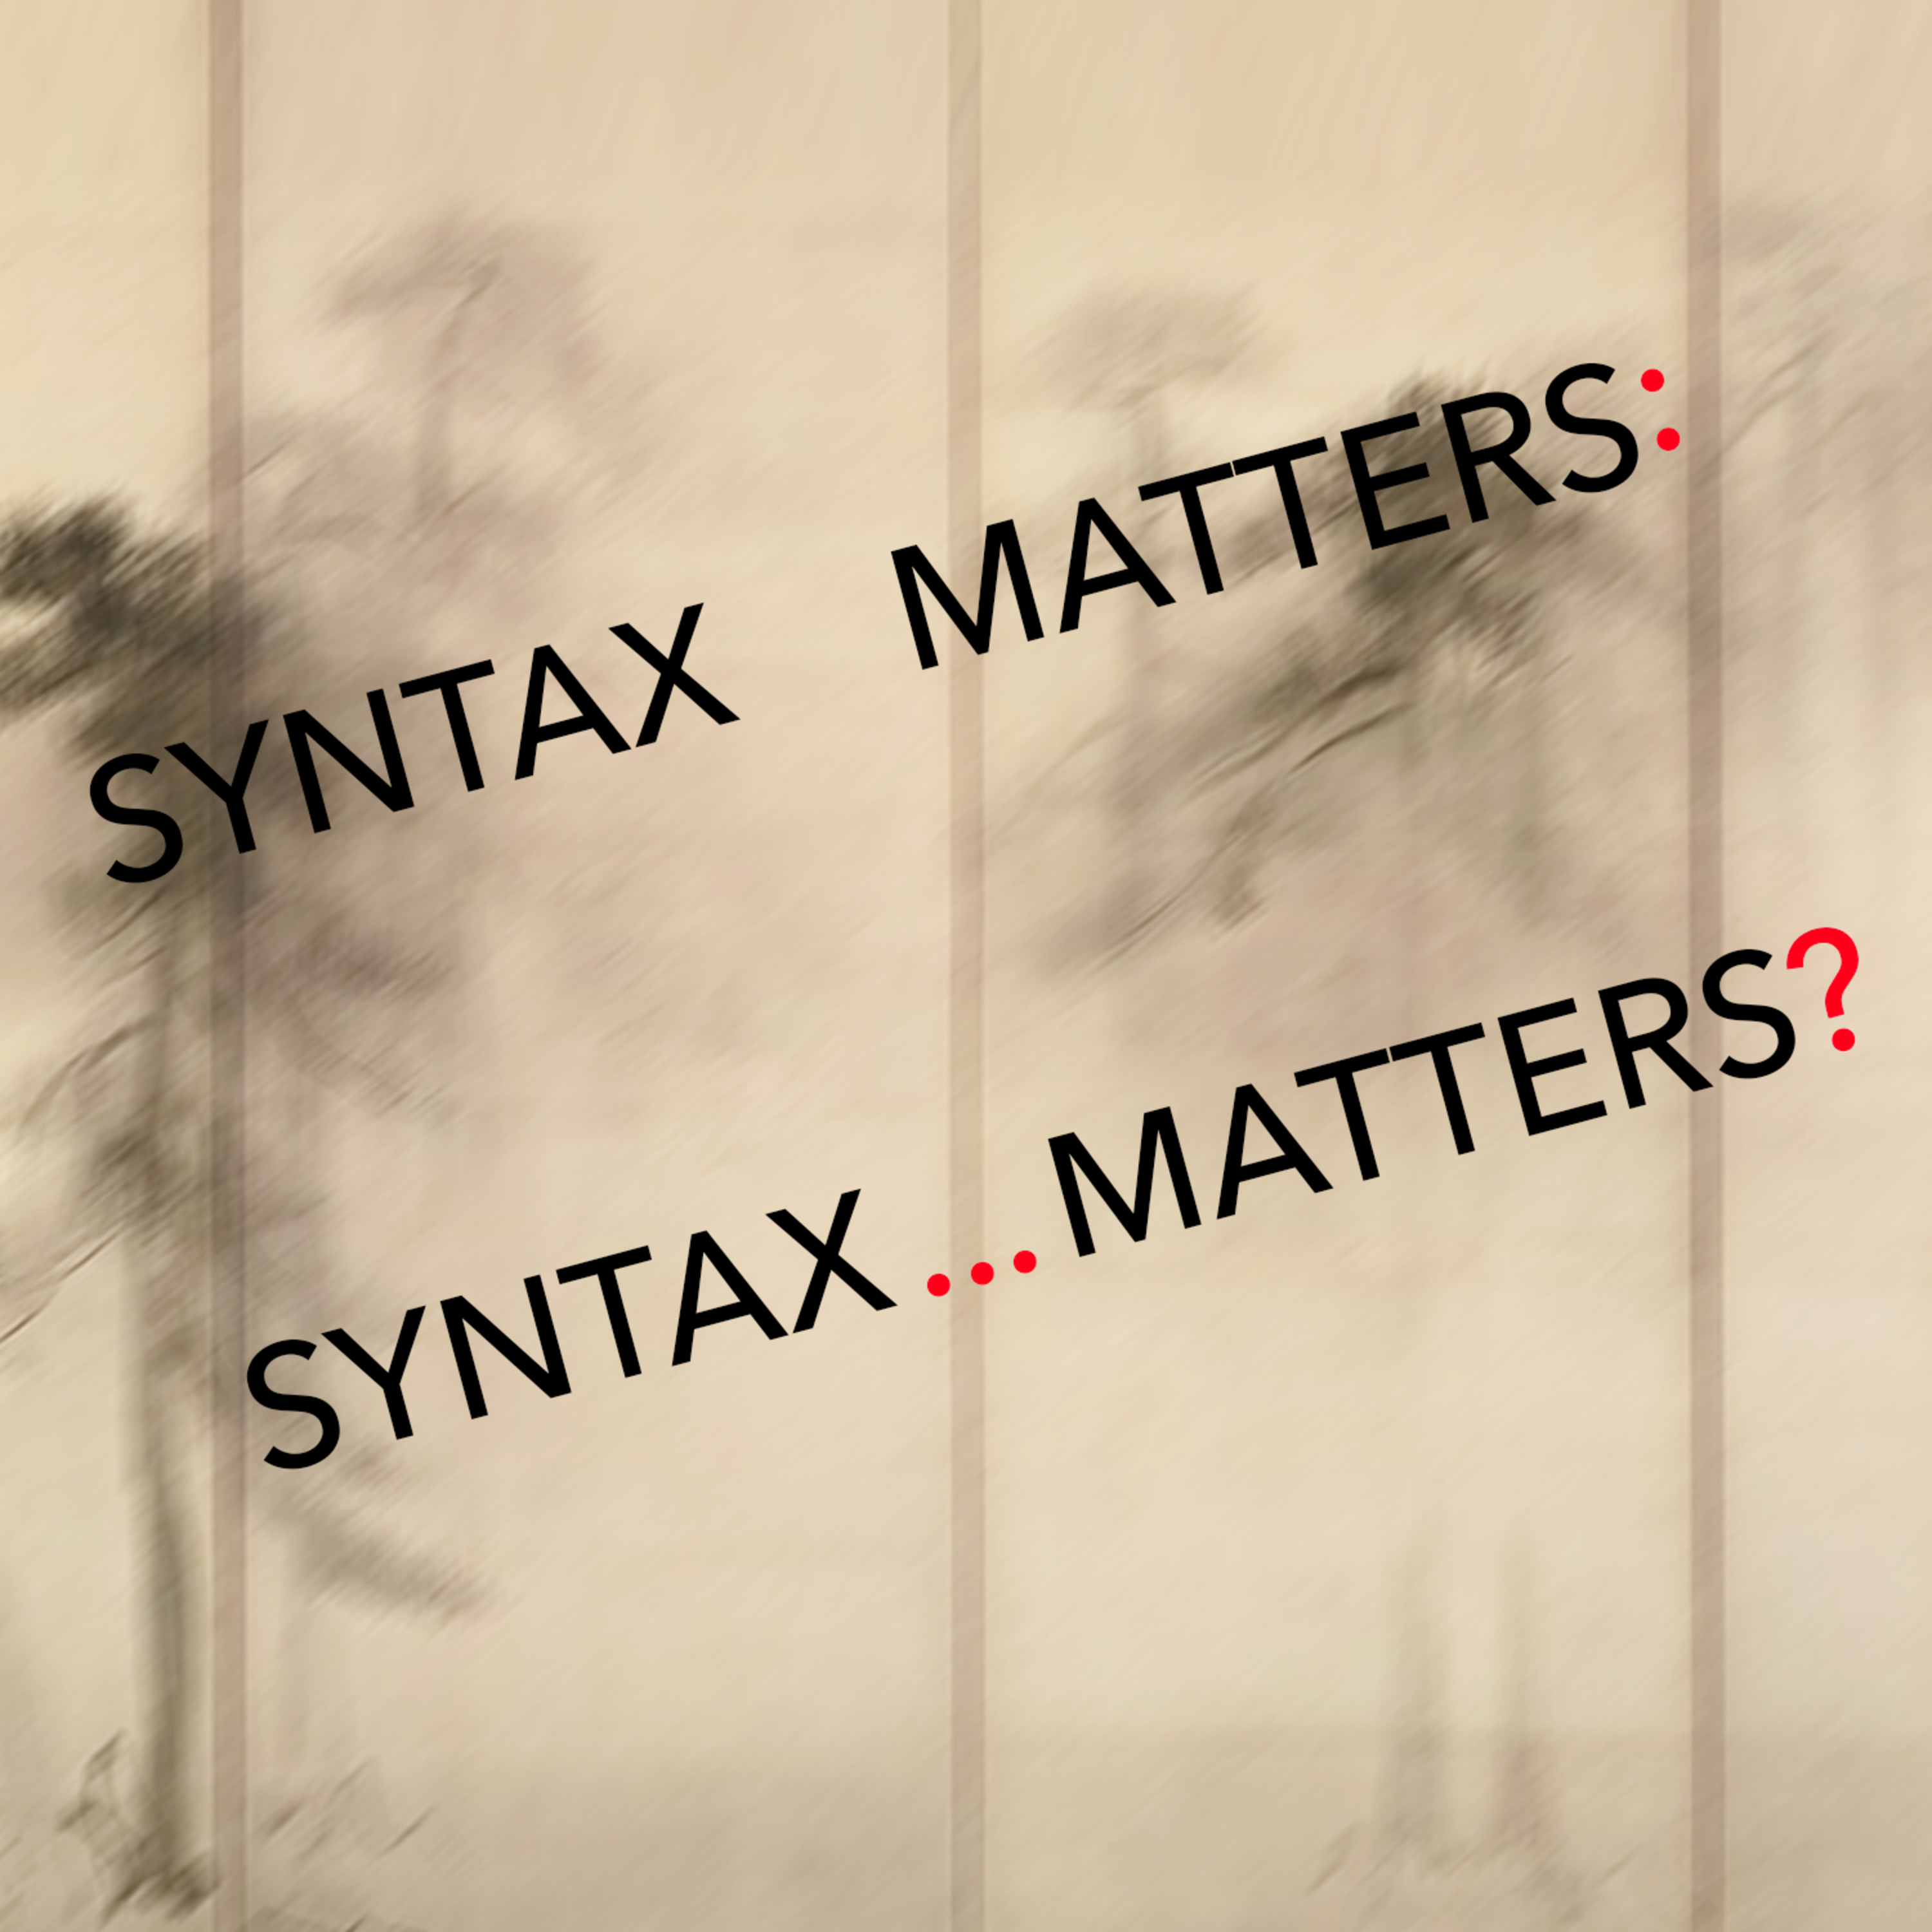 39: Syntax Matters: Syntax... Matters?